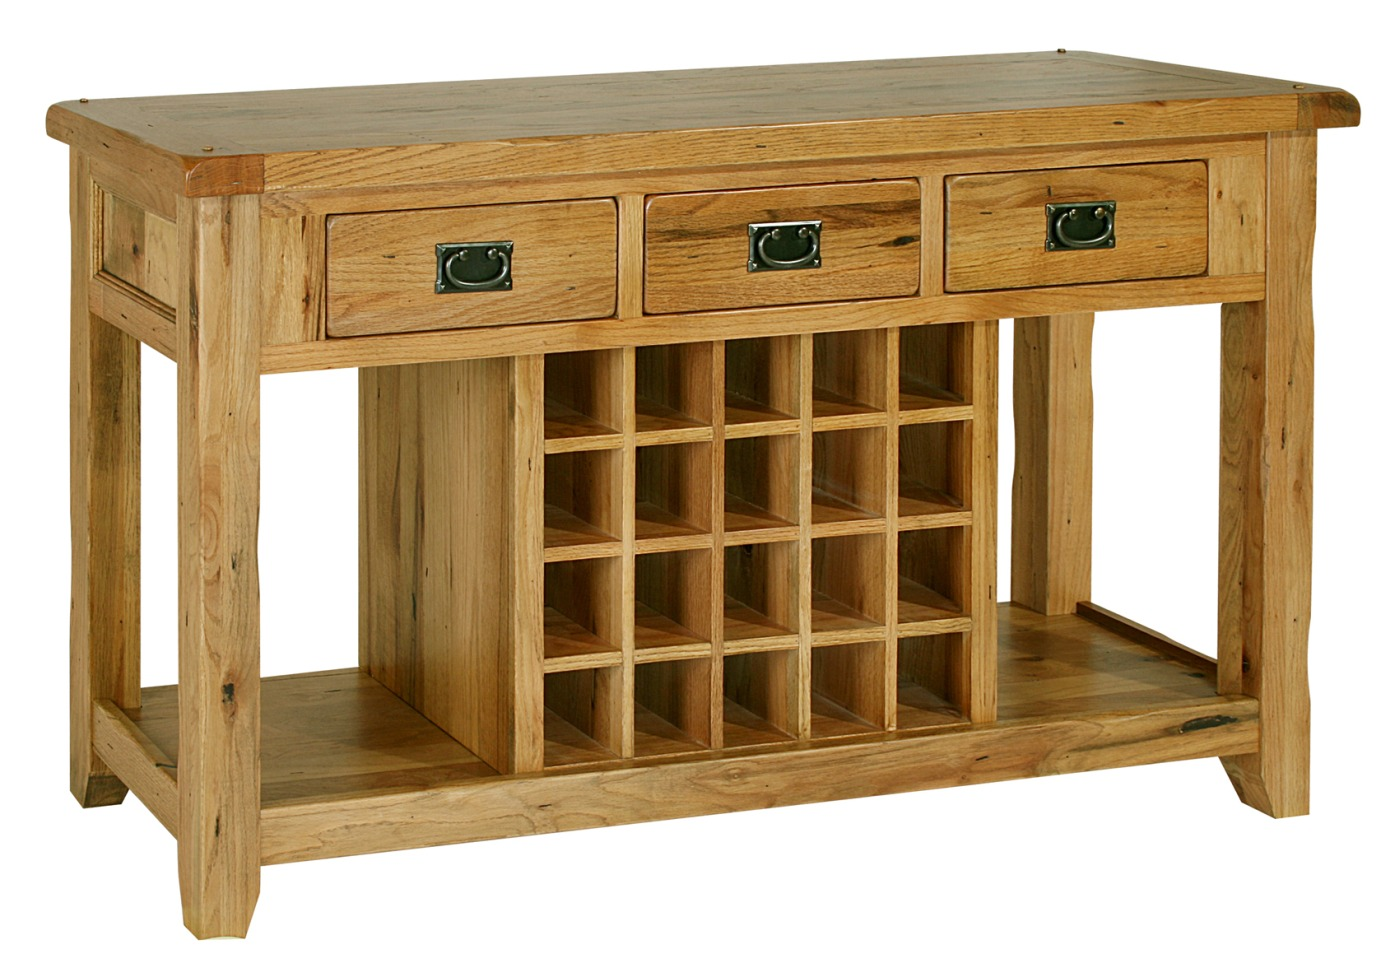 kitchen console table Tuscany solid oak hallway furniture console hall table with wine rack